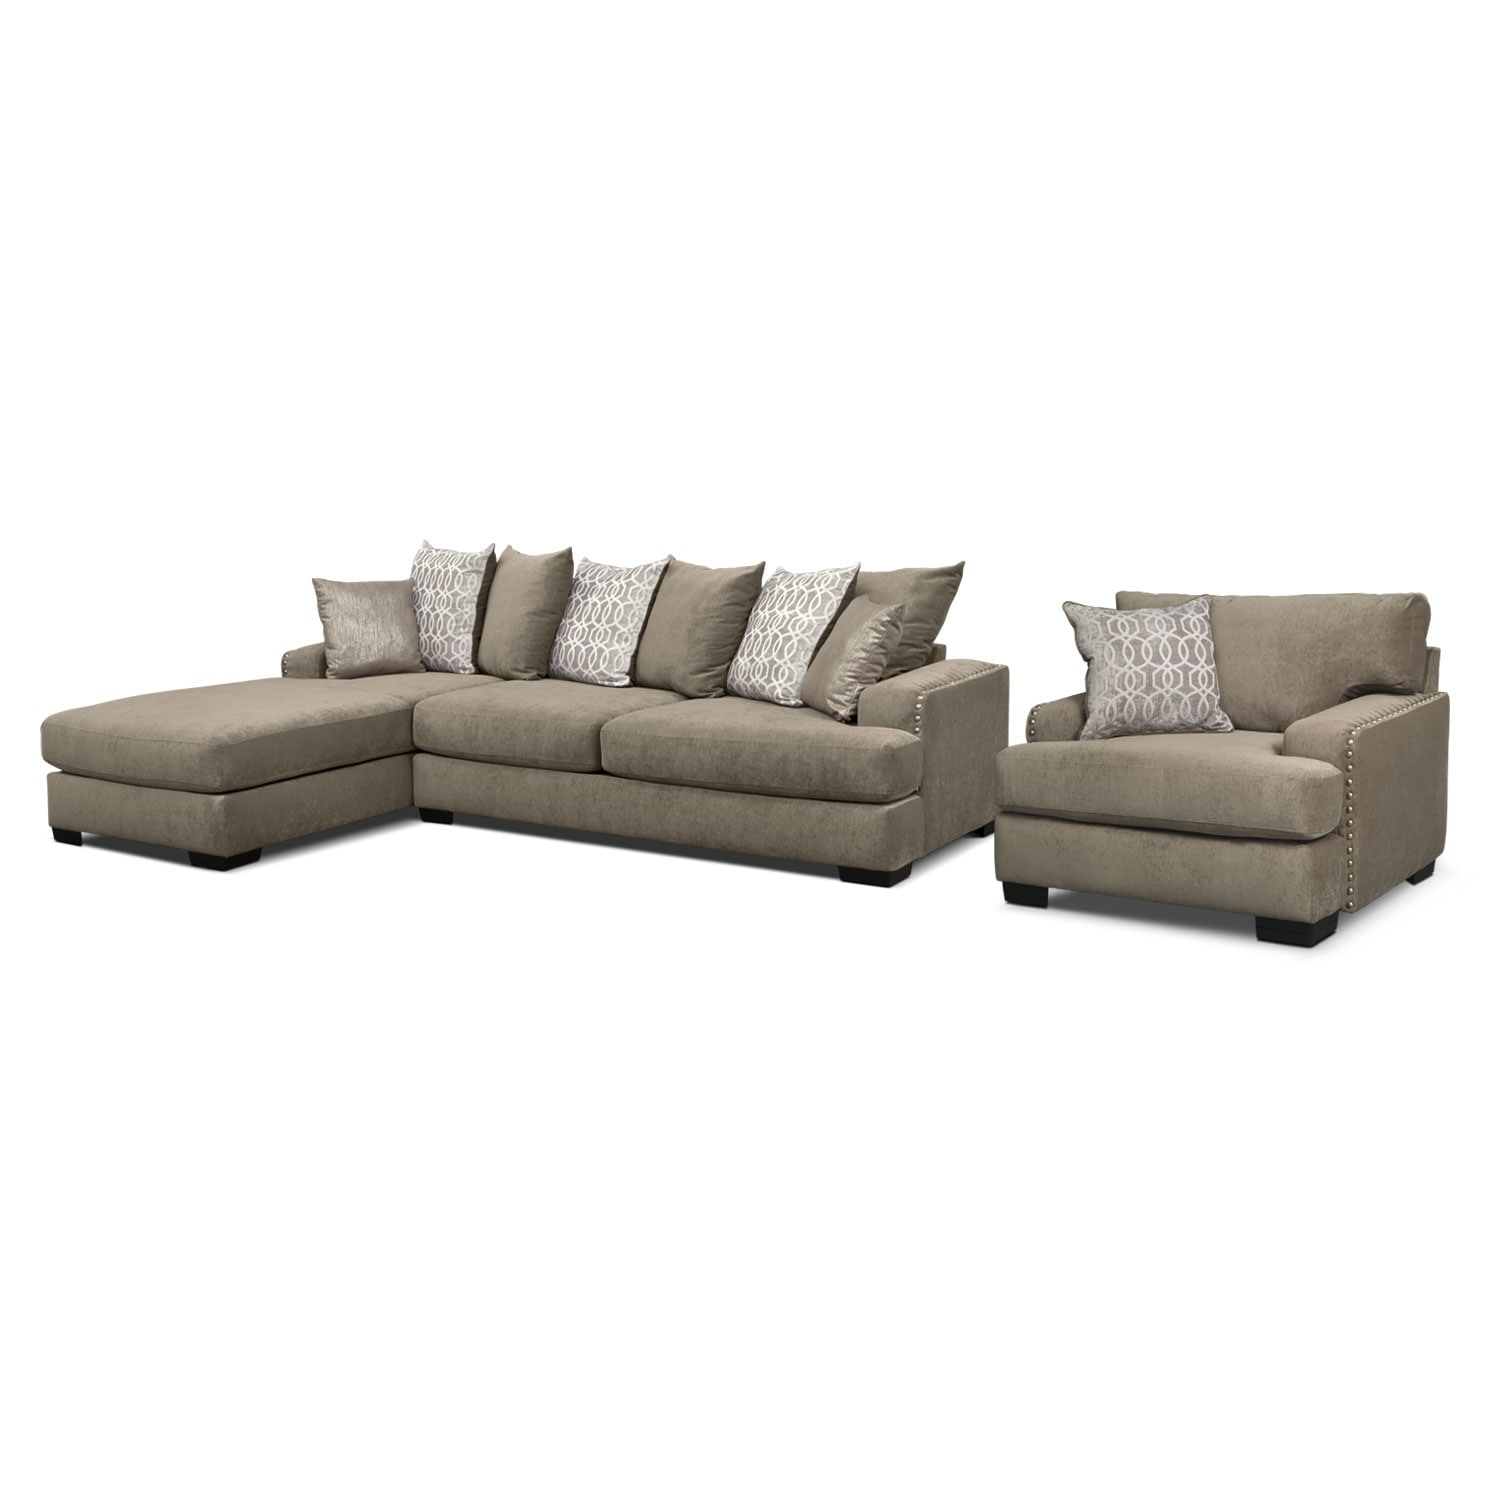 Living Room Furniture - Tempo 2 Pc. Sectional with Left-Facing Chaise w/ Chair